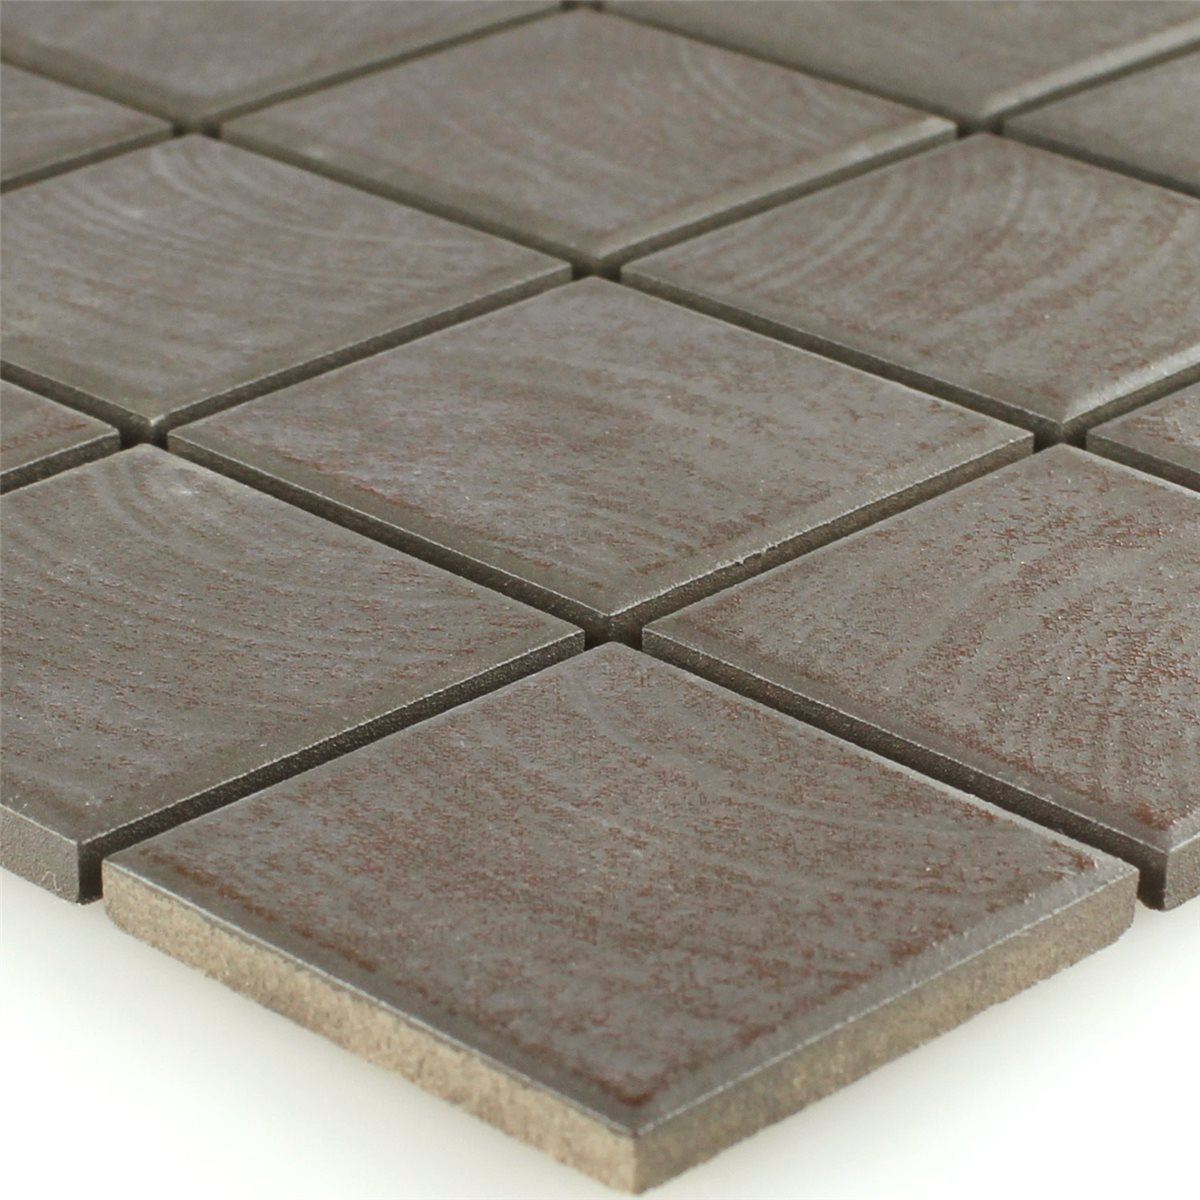 Ceramic mosaic tiles non slip brown structured www for Ceramic tile